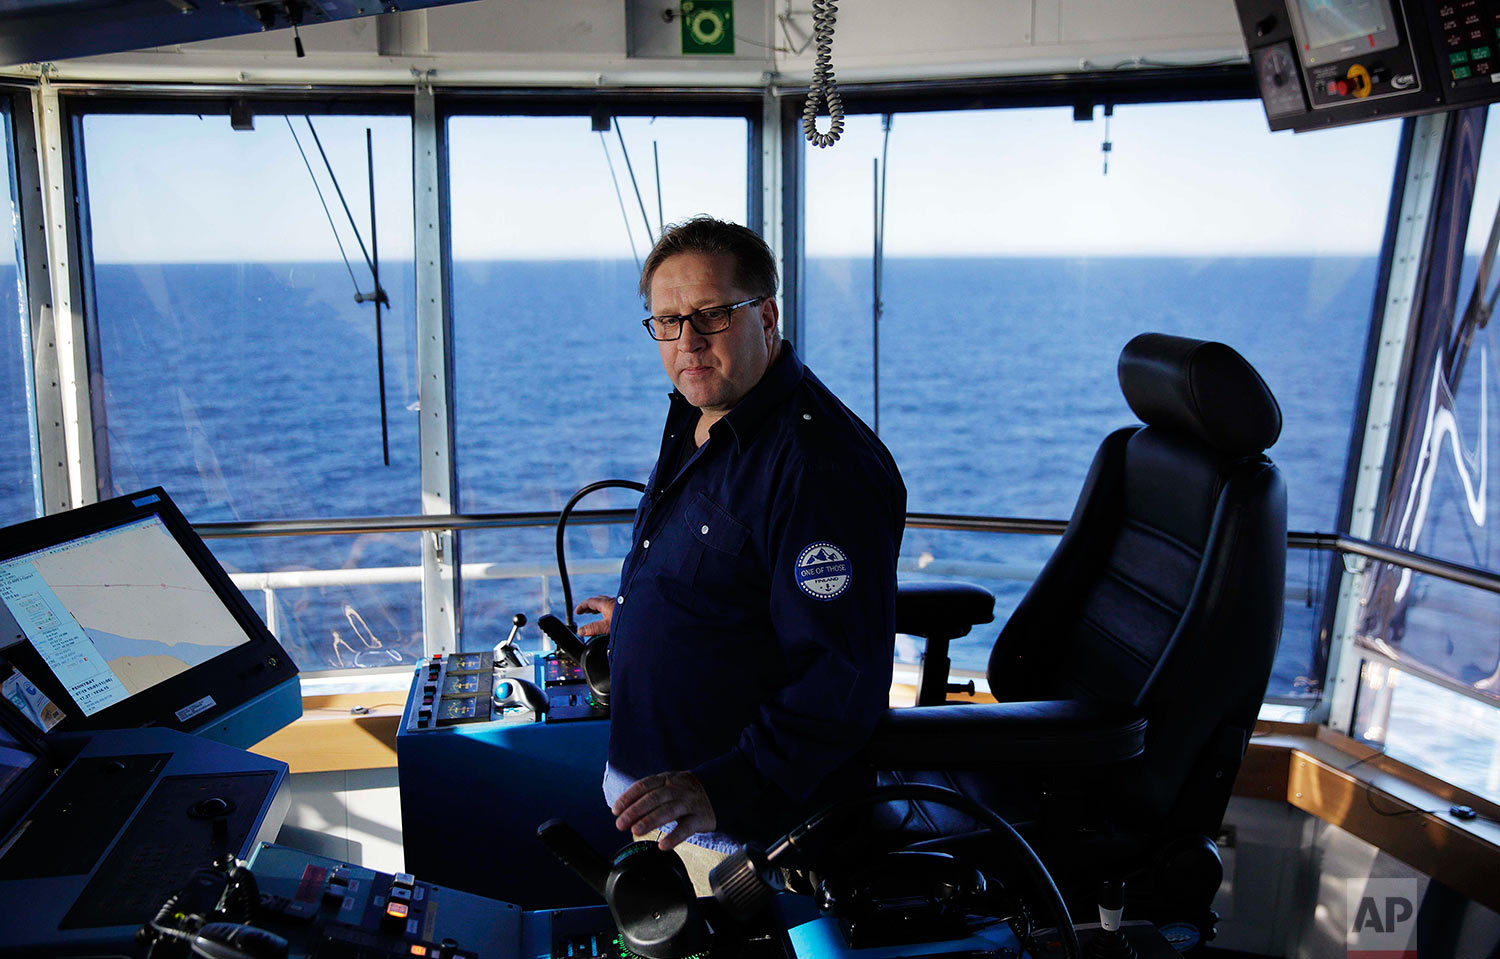 Master Mariner Jyri Viljanen, captain of the Finnish icebreaker MSV Nordica demonstrates the ship's maneuverability while sailing the Dolphin and Union Strait off the coast of Canada through the Arctic's Northwest Passage, Wednesday, July 19, 2017. According to Viljanen, only lots of supervised practice can adequately prepare a person for the challenges of steering the 13,000 ton ship. (AP Photo/David Goldman)